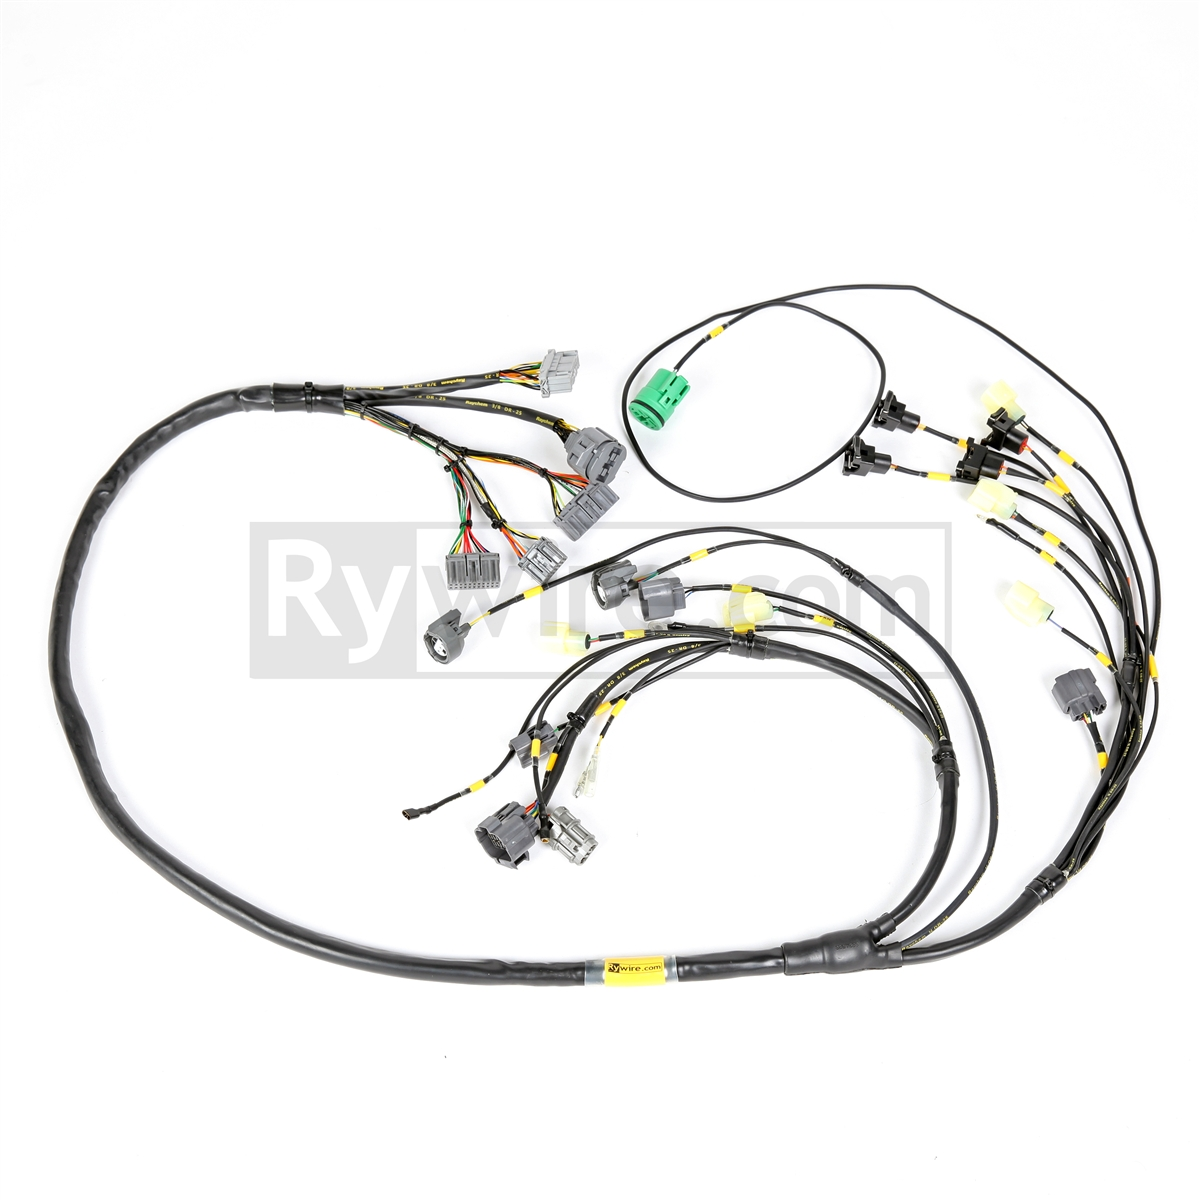 rywire com mil spec f series (f20b) & h series (h22) harness wire harness schematic h22a wiring harness #2